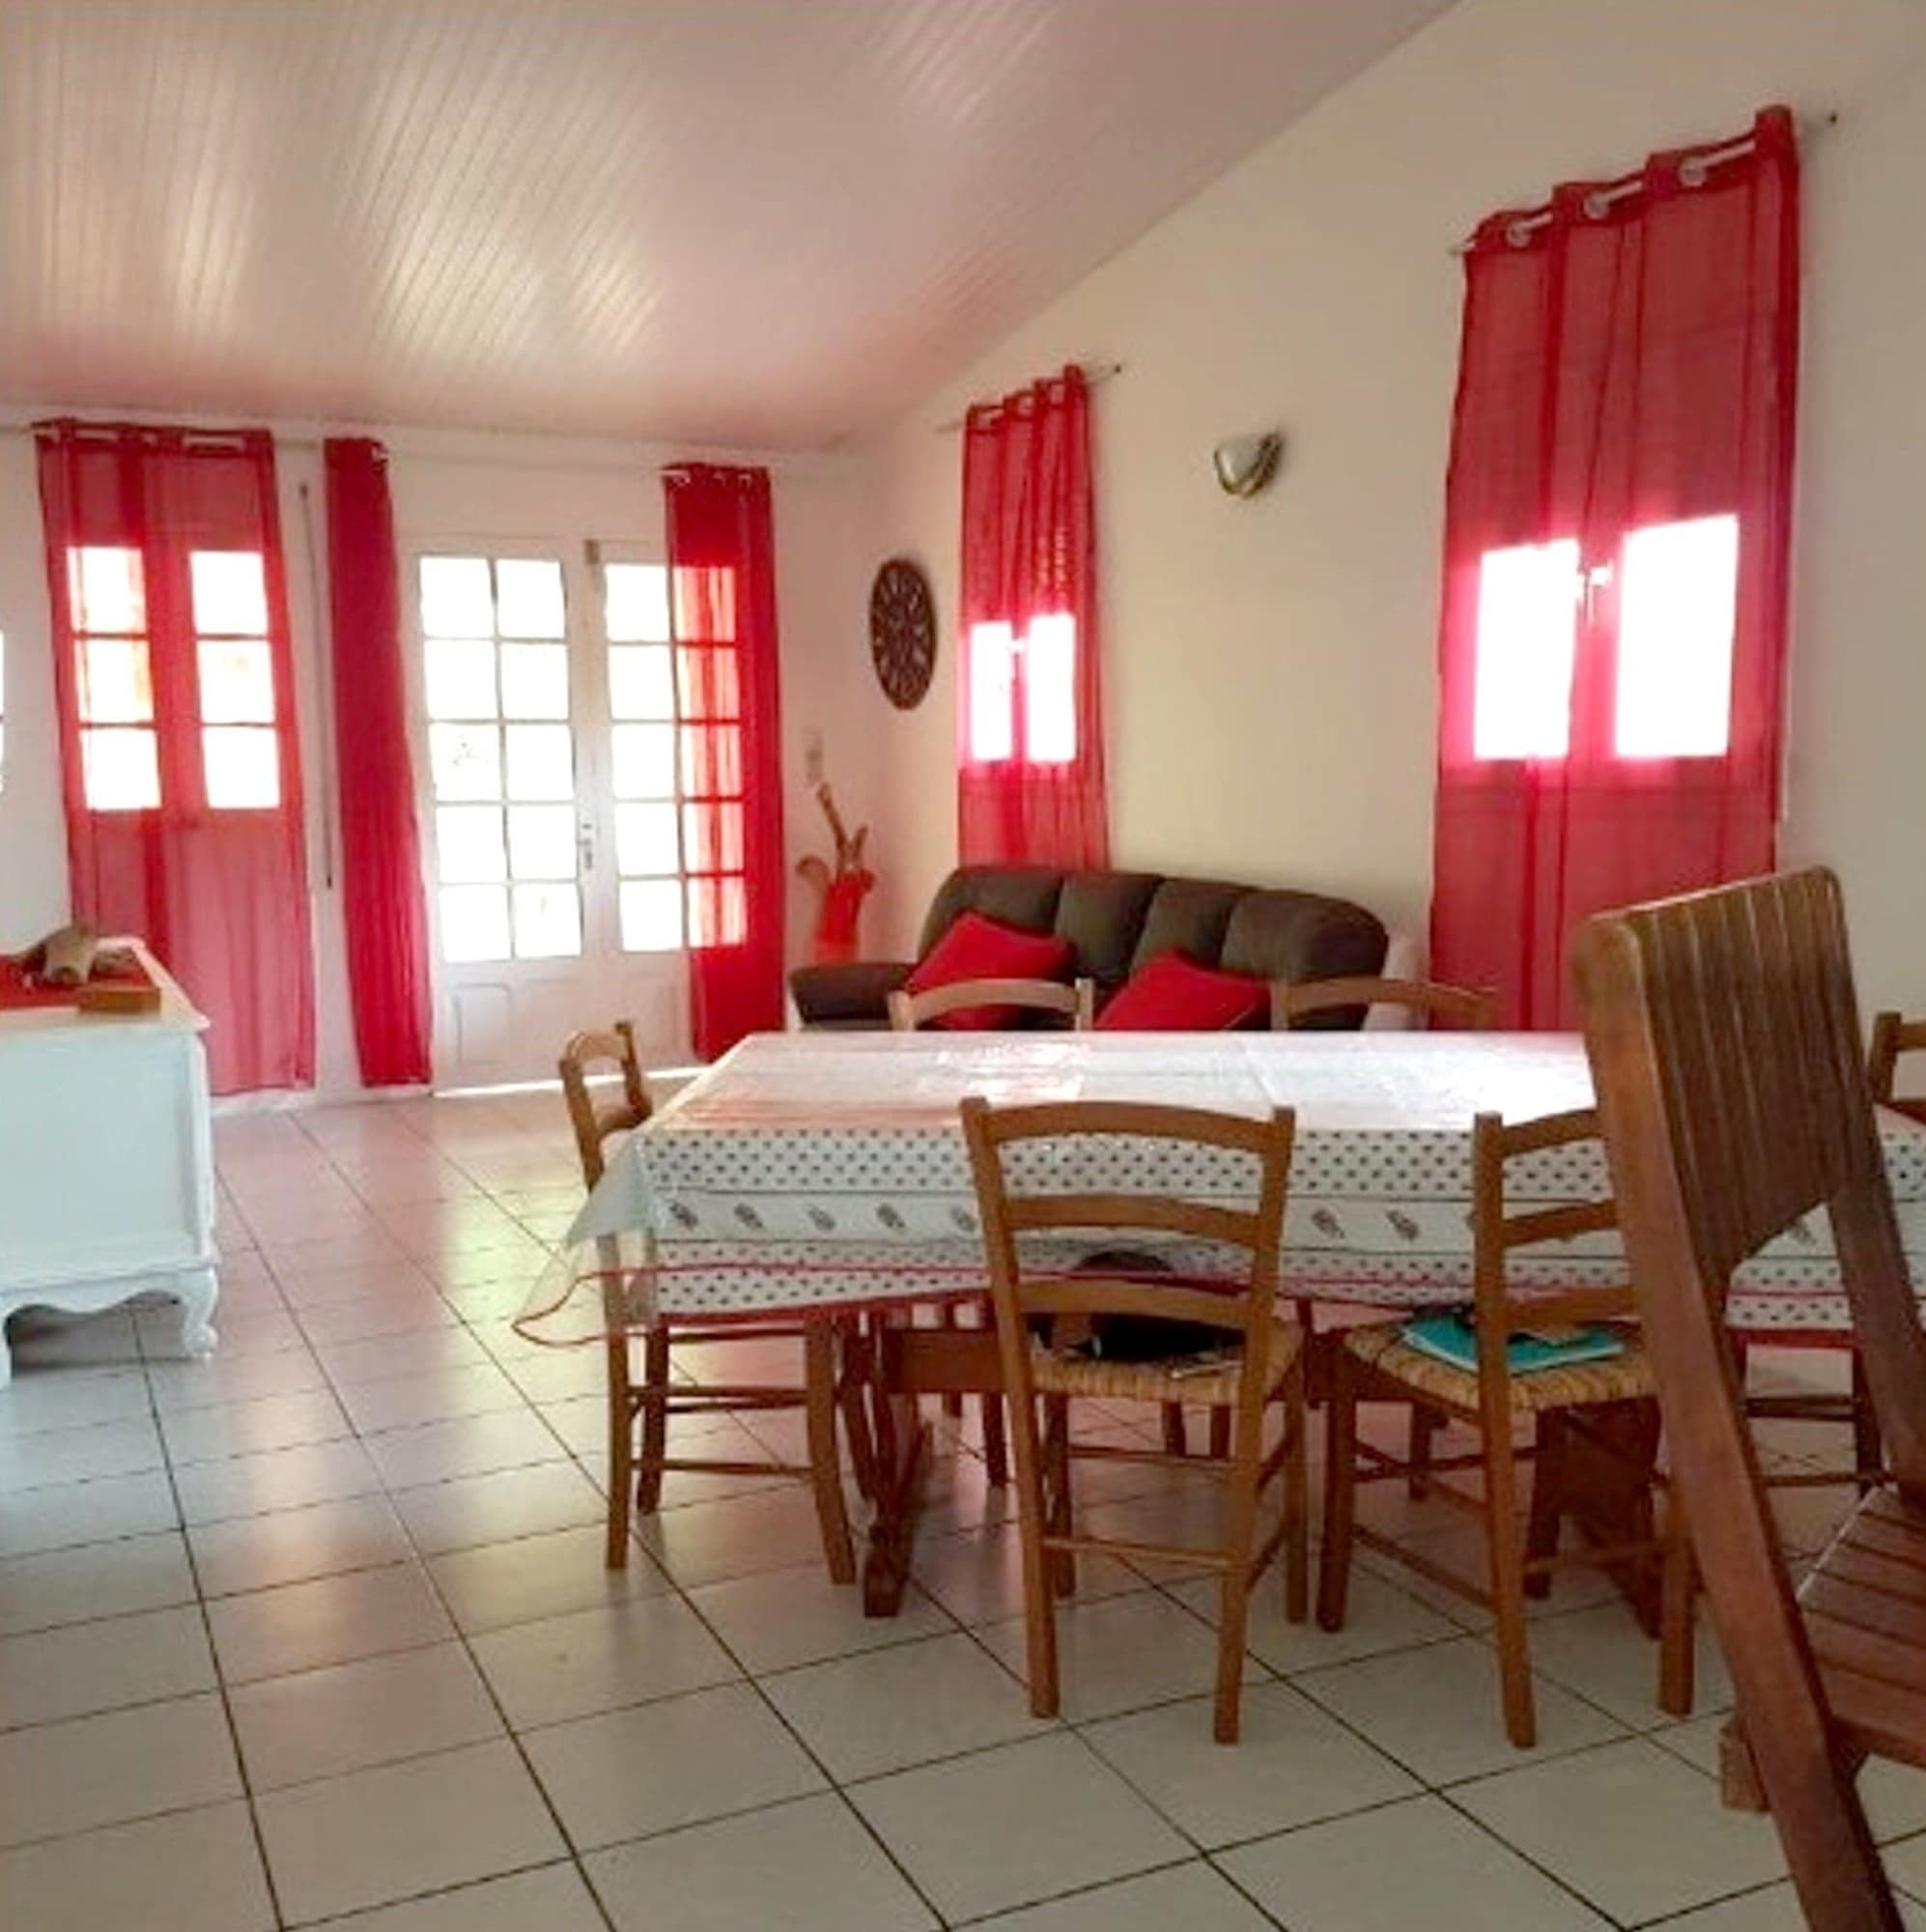 House With 3 Bedrooms in Le Lamentin, With Wonderful City View, Enclosed Garden and Wifi - 10 km From the Beach, Le Lamentin